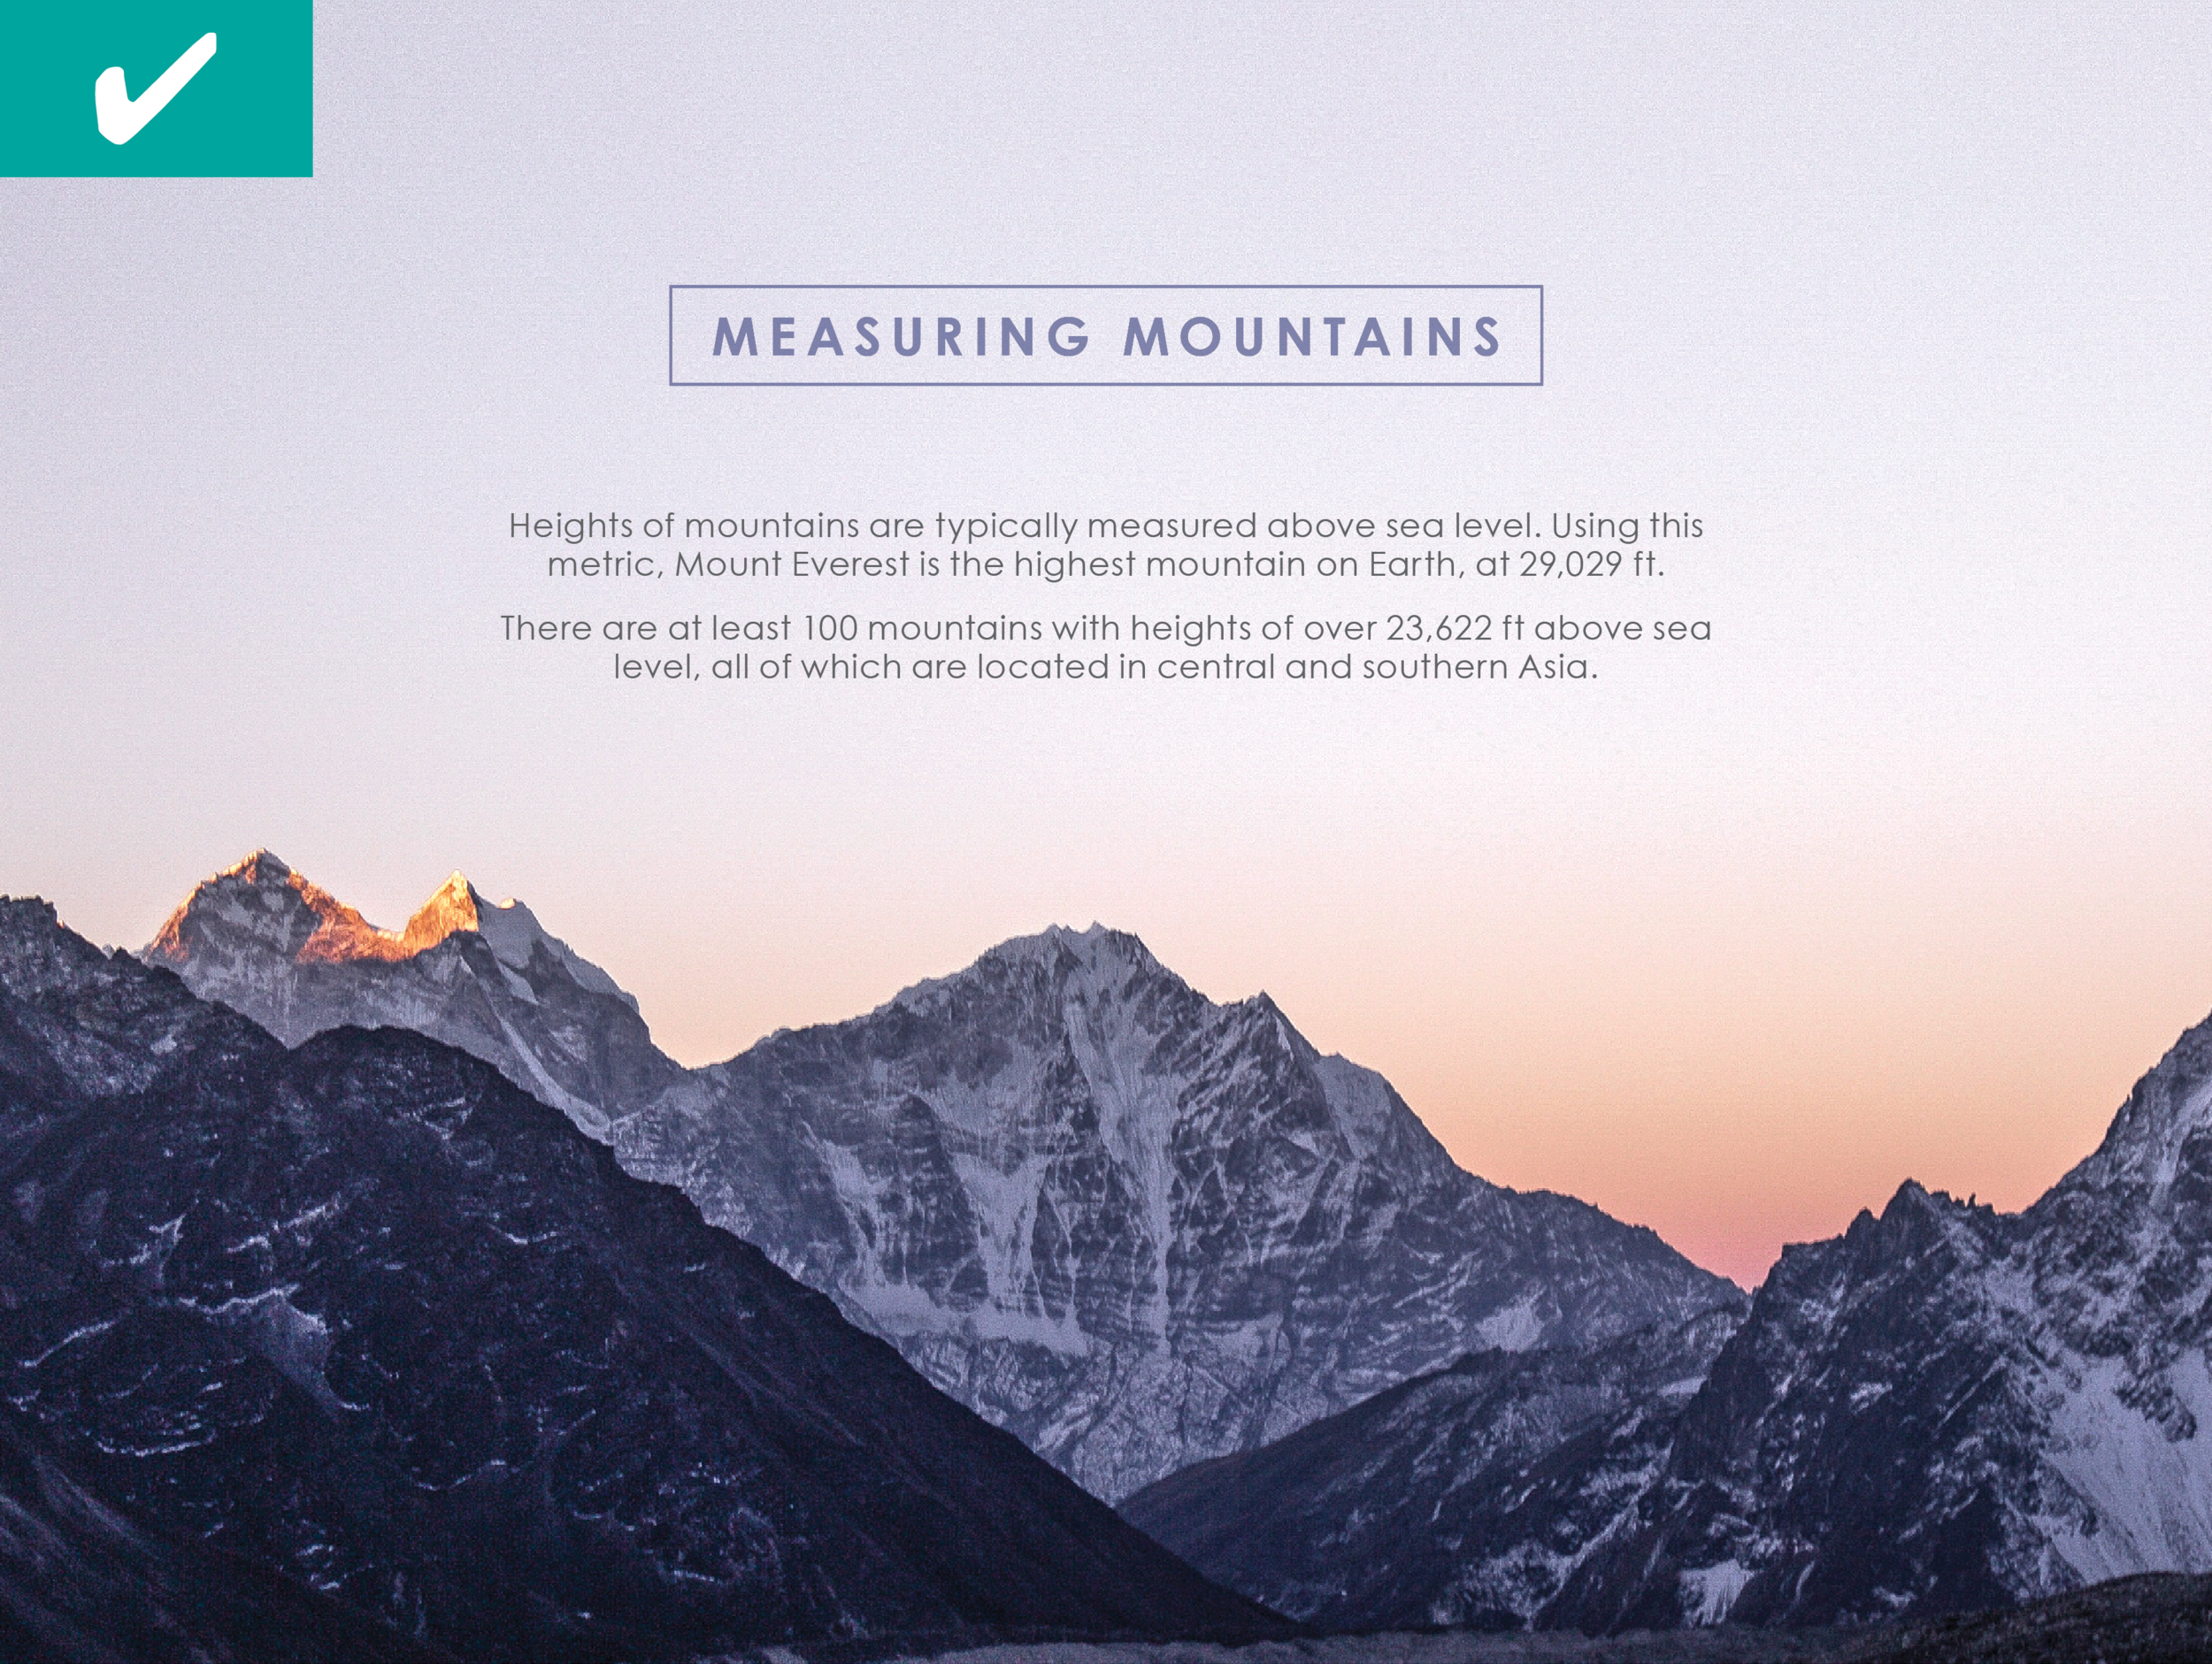 Our Version:  The scenic view instantly draws in anyone interested in mountains.